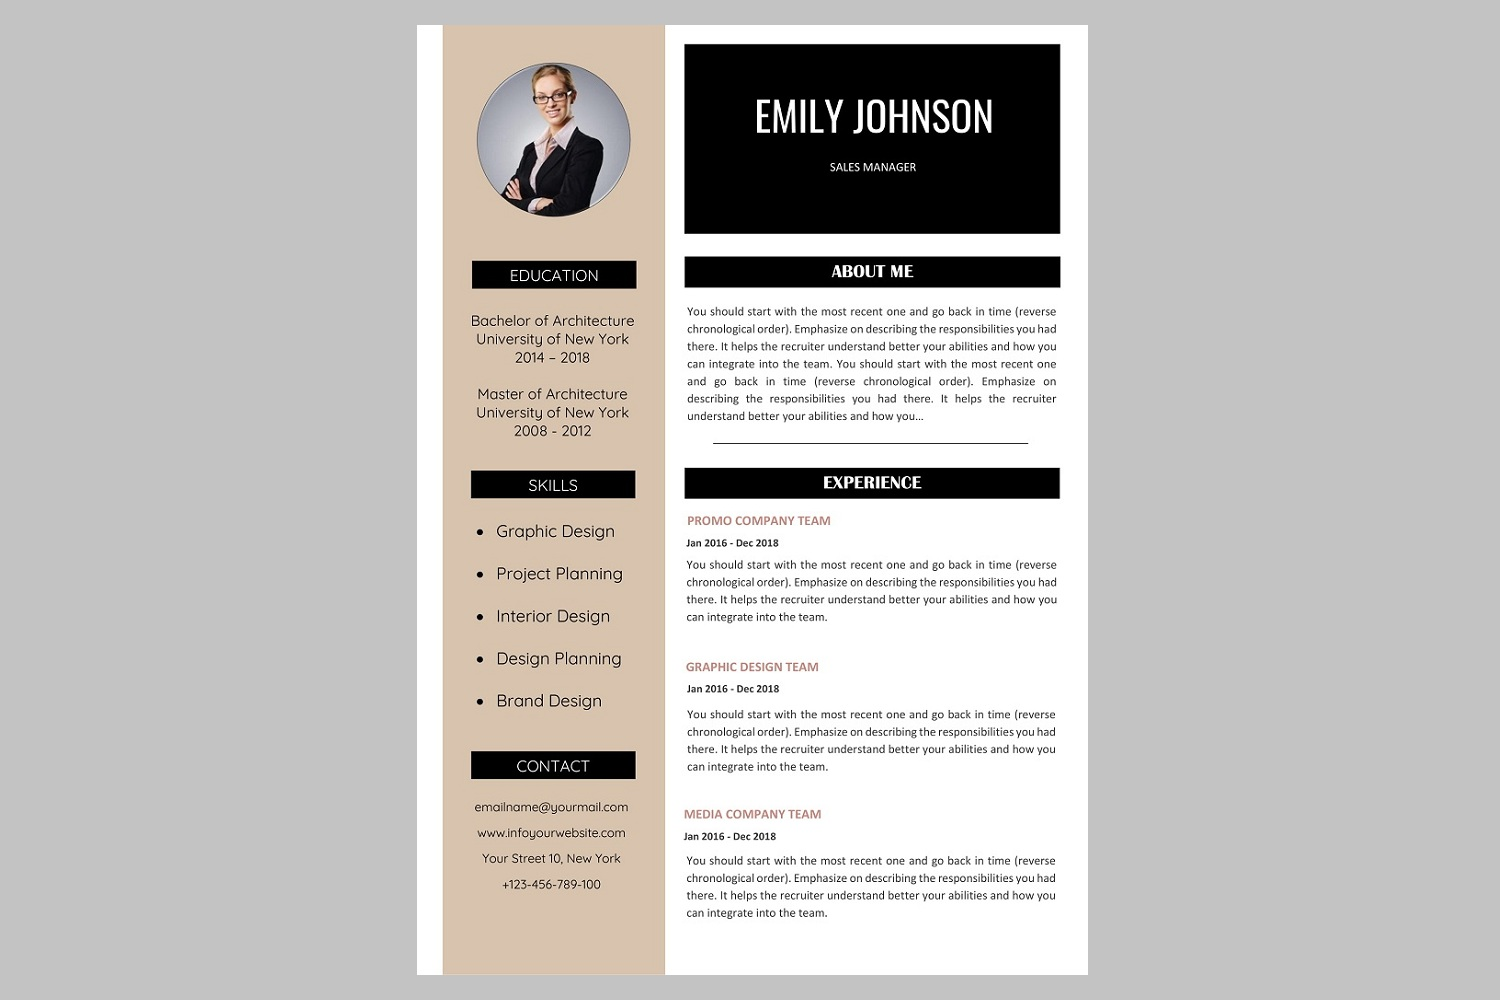 Creative resume template / CV. Bundle offer example image 2